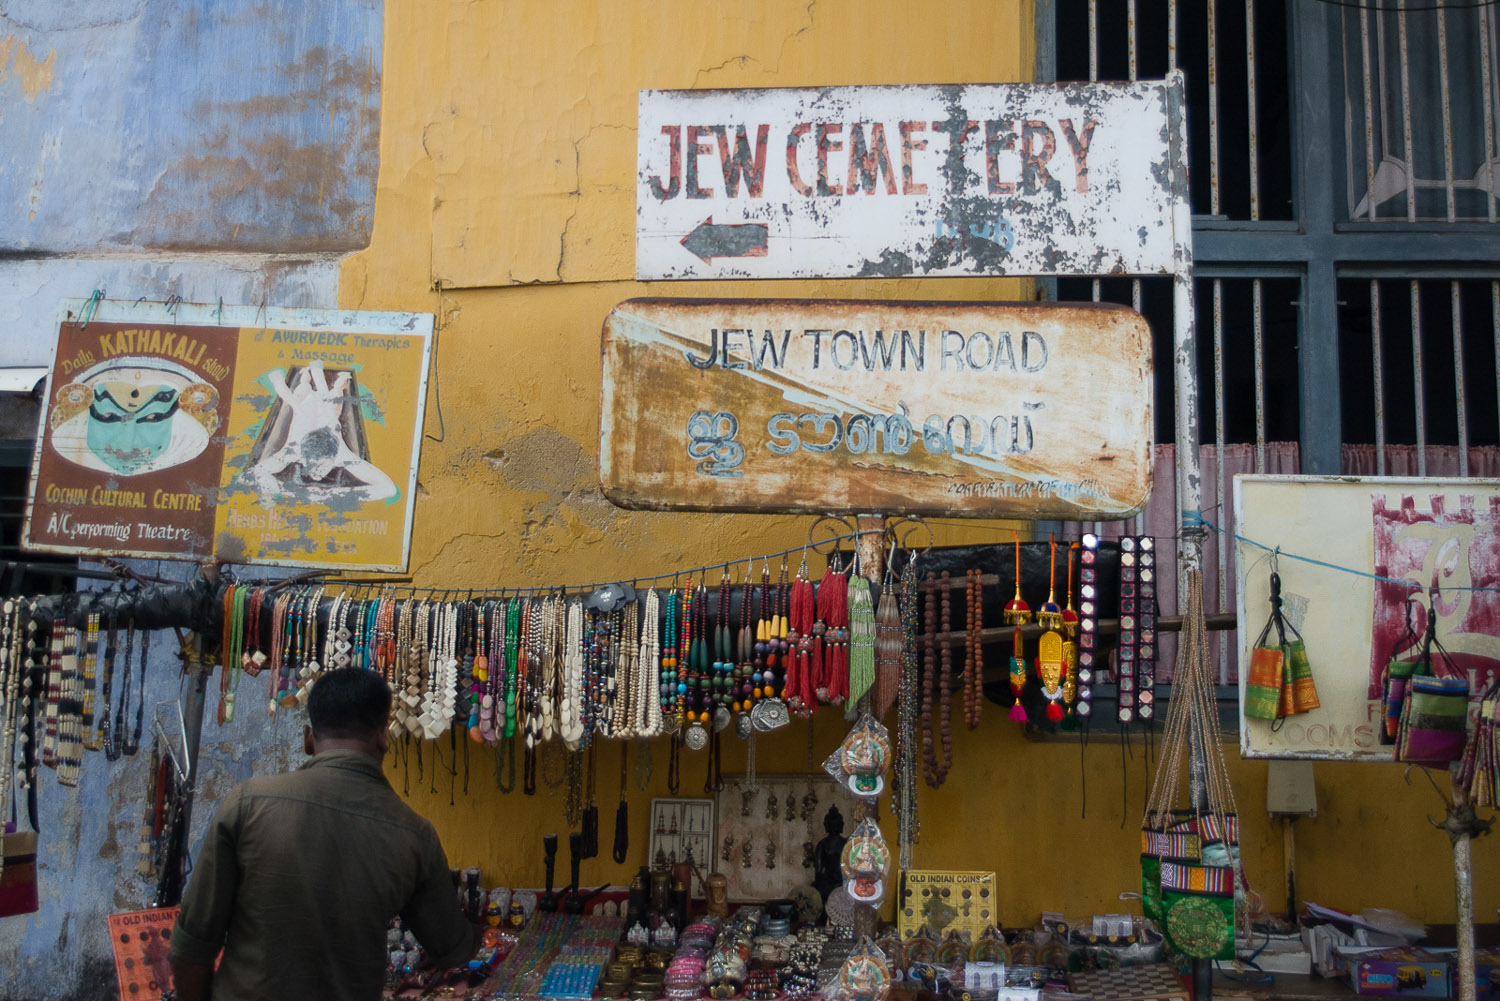 Jewtown, as the Jewish neighborhood in Kochi is called, is one of the most popular tourist spots in Kerala.